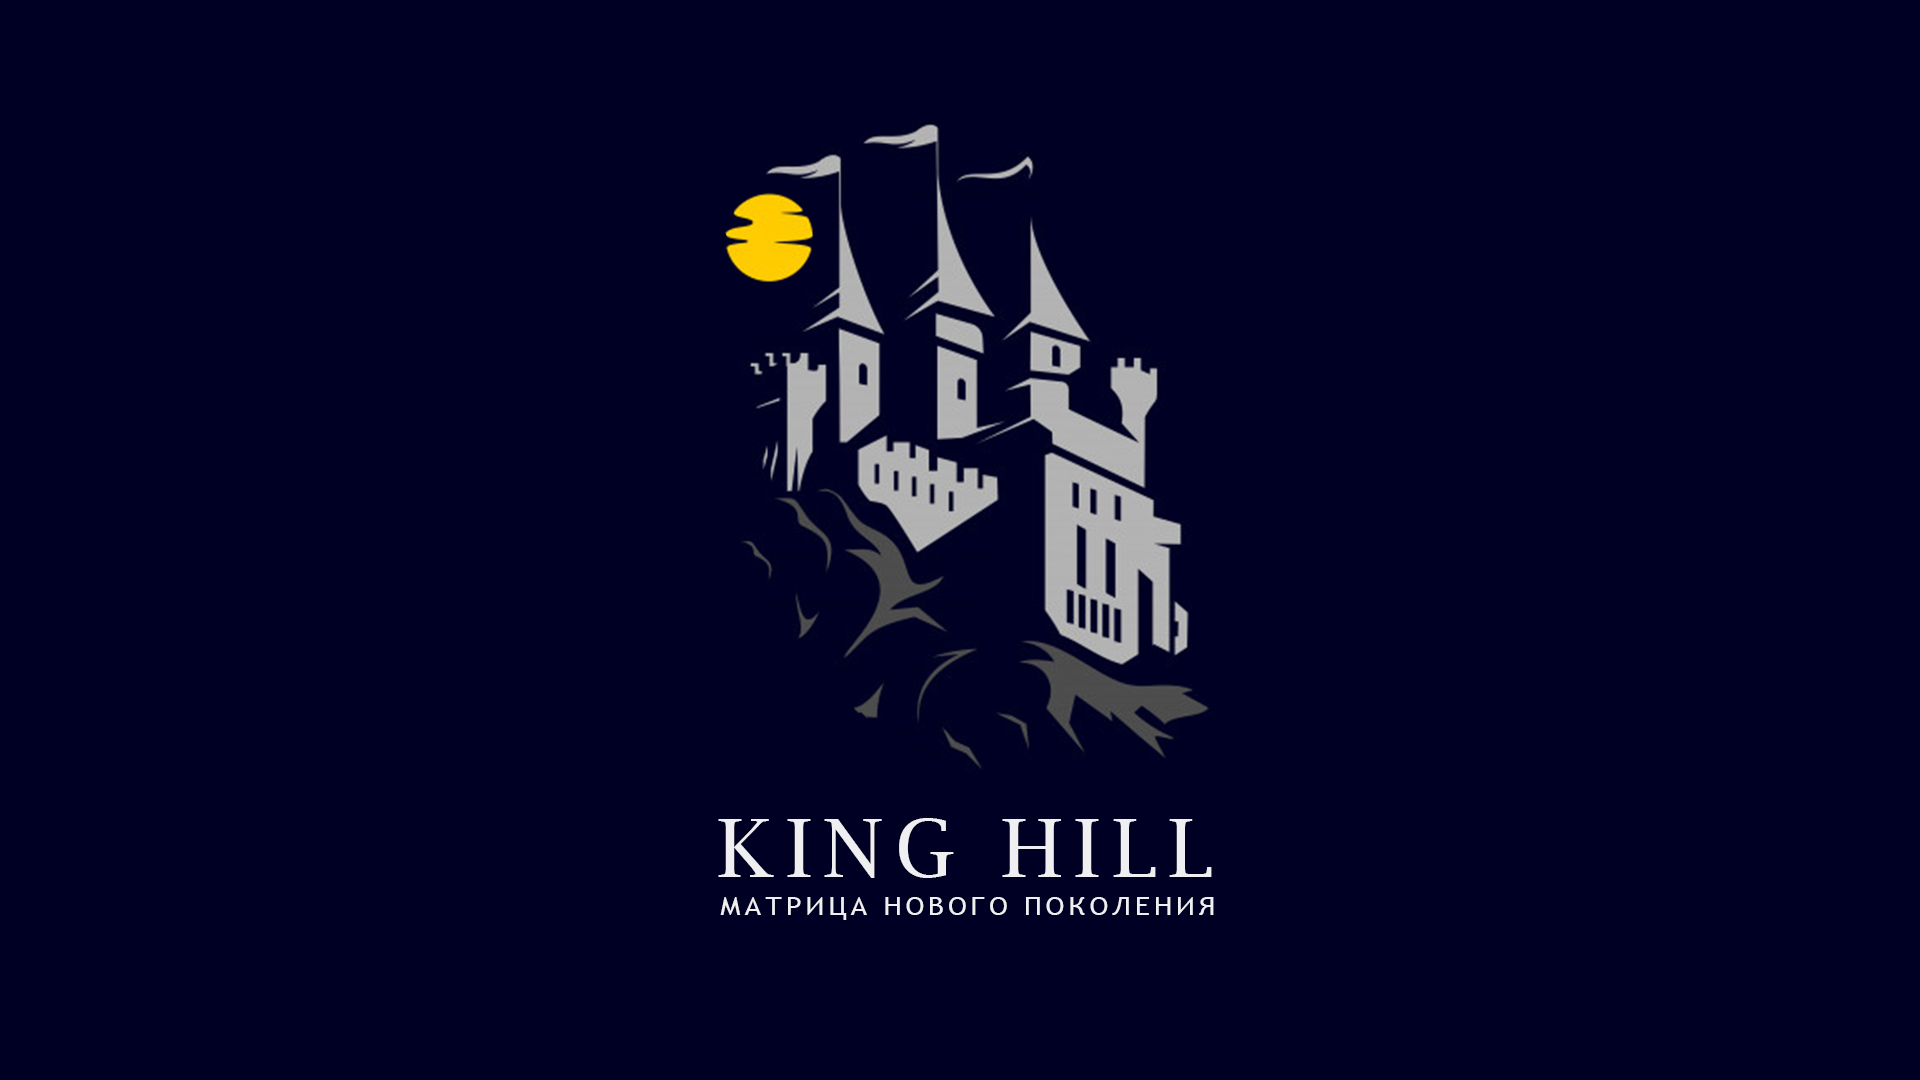 t.me/kinghillBot - King Hill King-hill